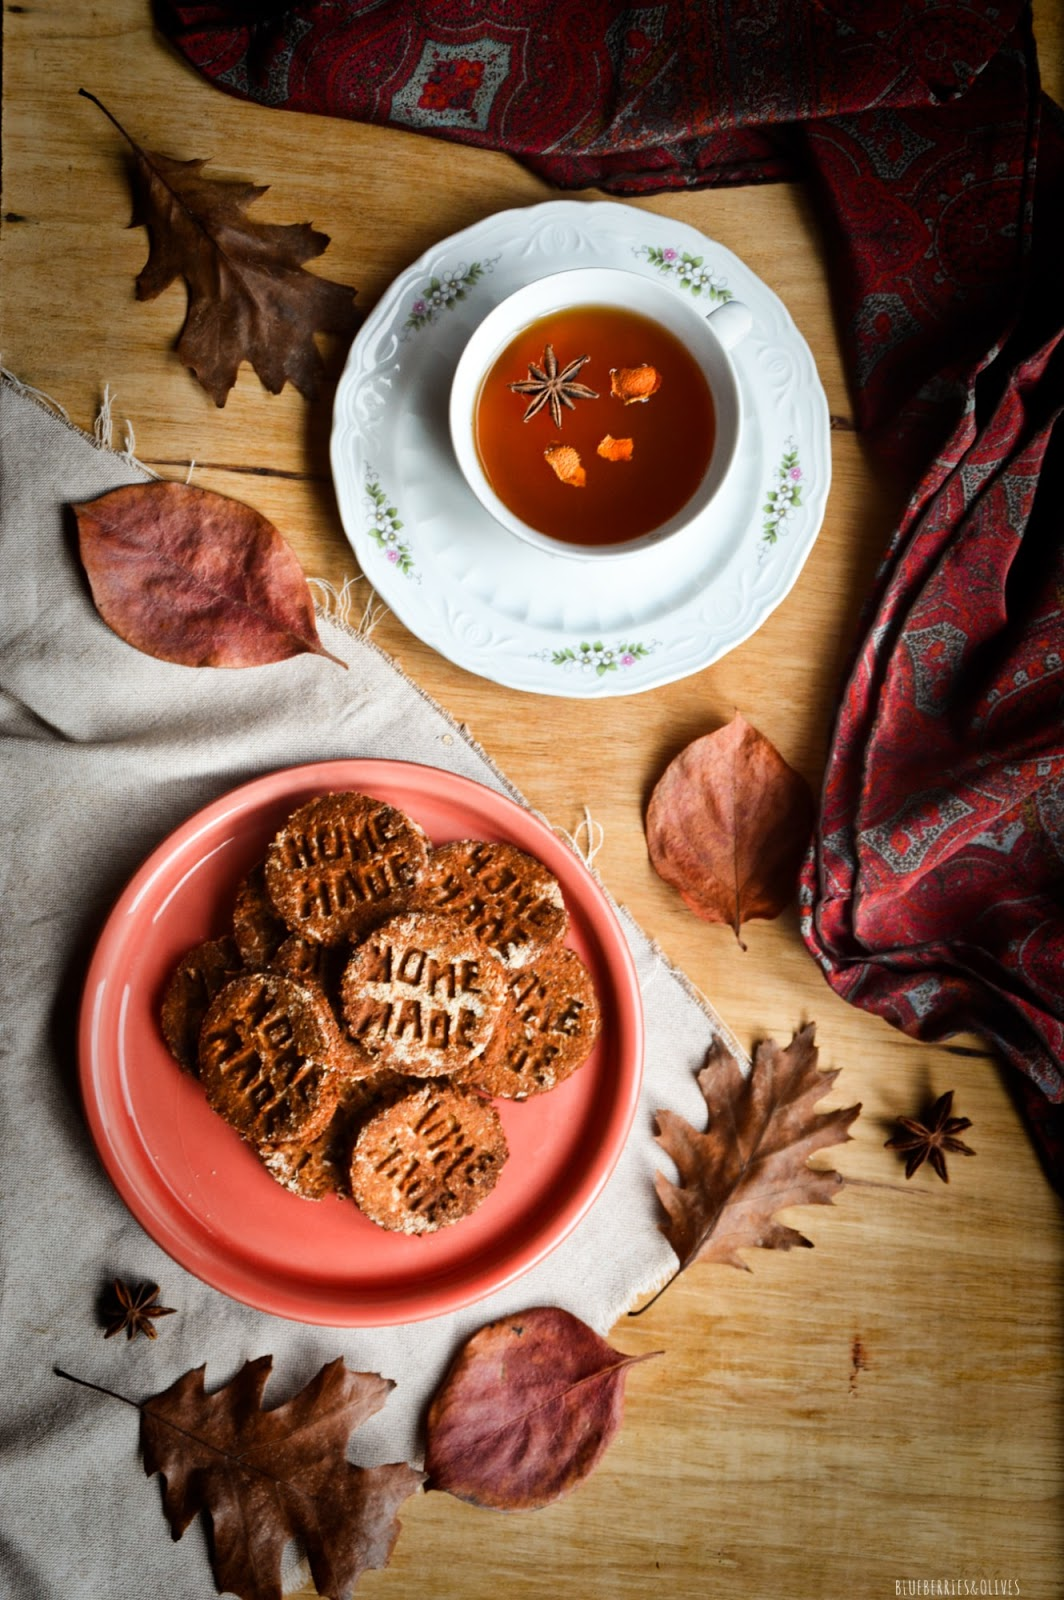 Cenital view of Piled cookies on red ceramic dish, dark background, old wood, piles books with red apple on top, porcelain mug with tea, star anise and orange peels